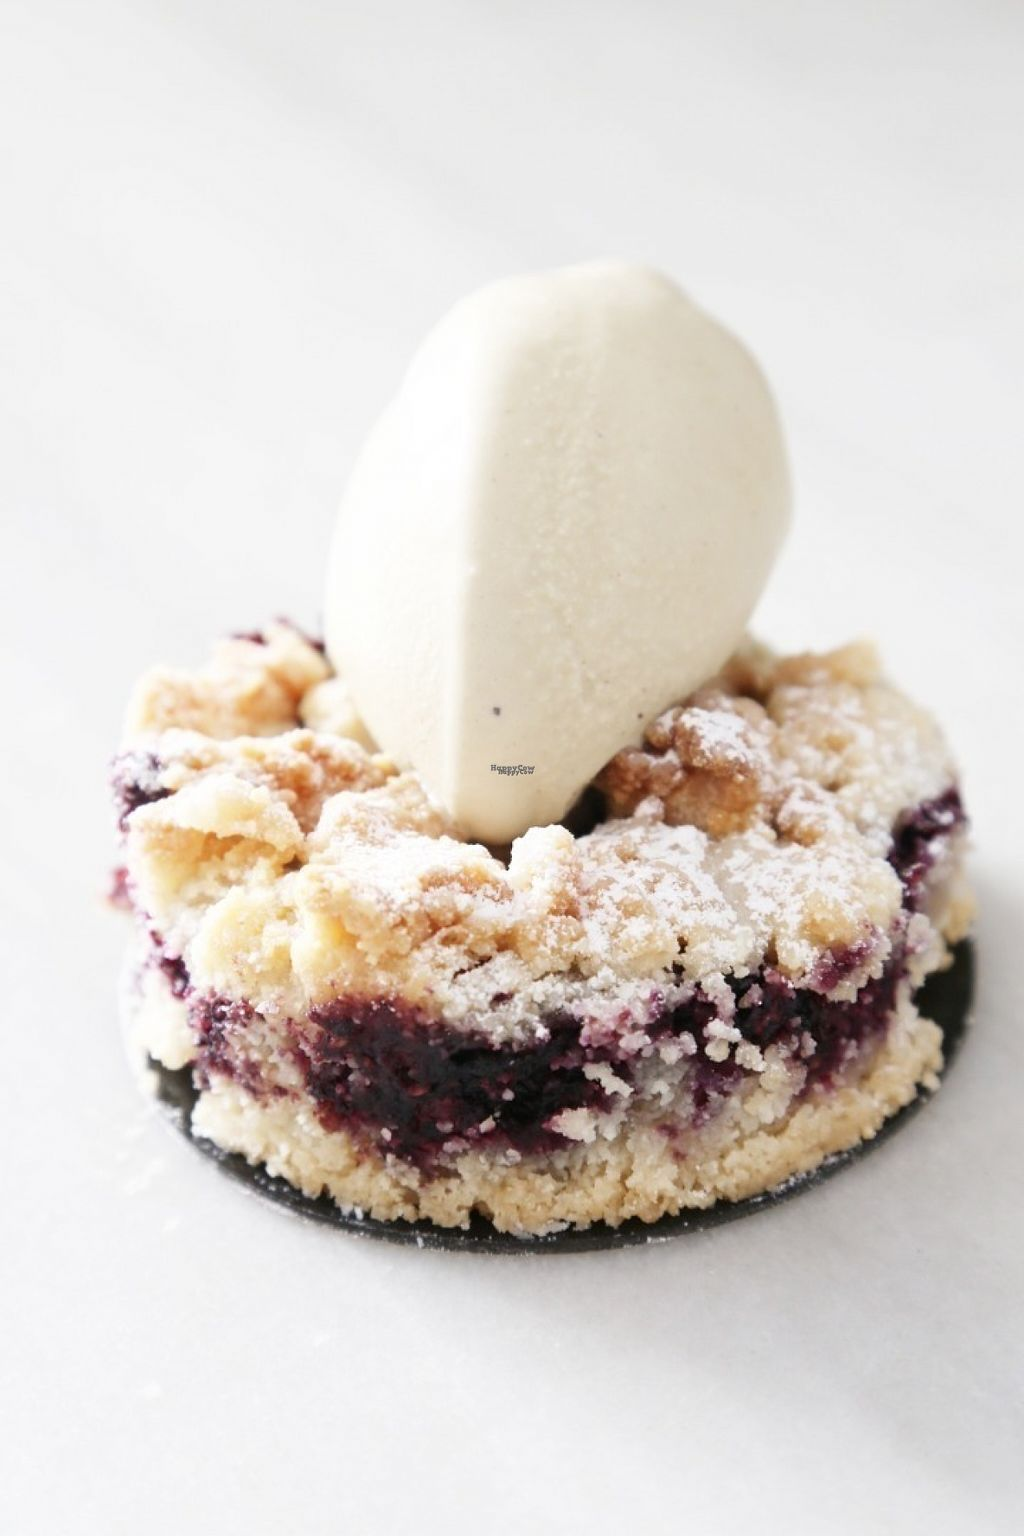 """Photo of Uay Balam  by <a href=""""/members/profile/FaustoLuna"""">FaustoLuna</a> <br/>Vegan and gluten free almond flour crumble with gelato on top. No, you are not dreaming. This is real <br/> August 7, 2016  - <a href='/contact/abuse/image/76645/166694'>Report</a>"""